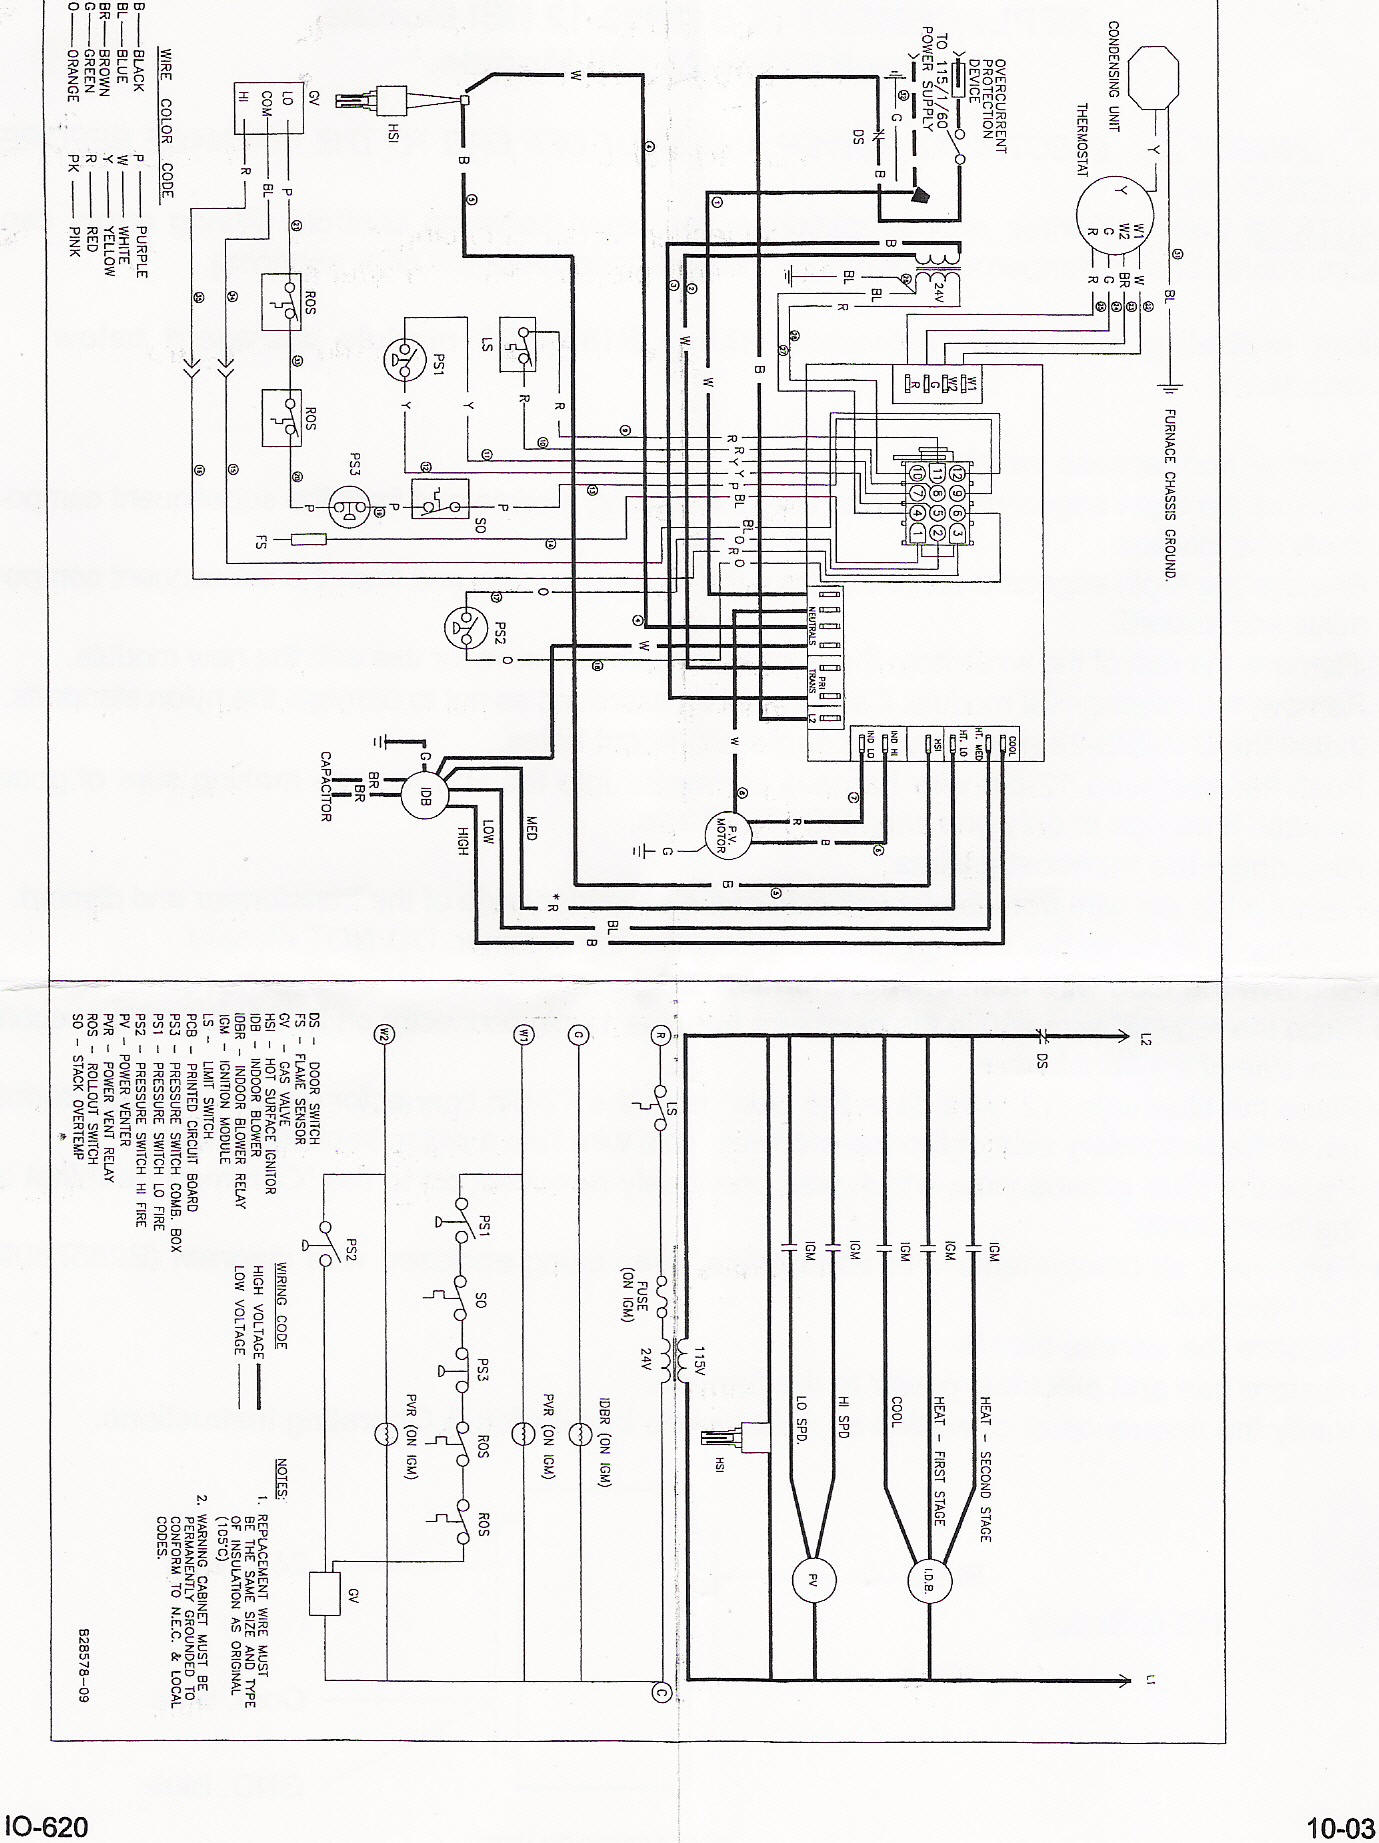 goodma2 instr goodman control board b18099 23 instructions goodman gas furnace wiring diagram at webbmarketing.co